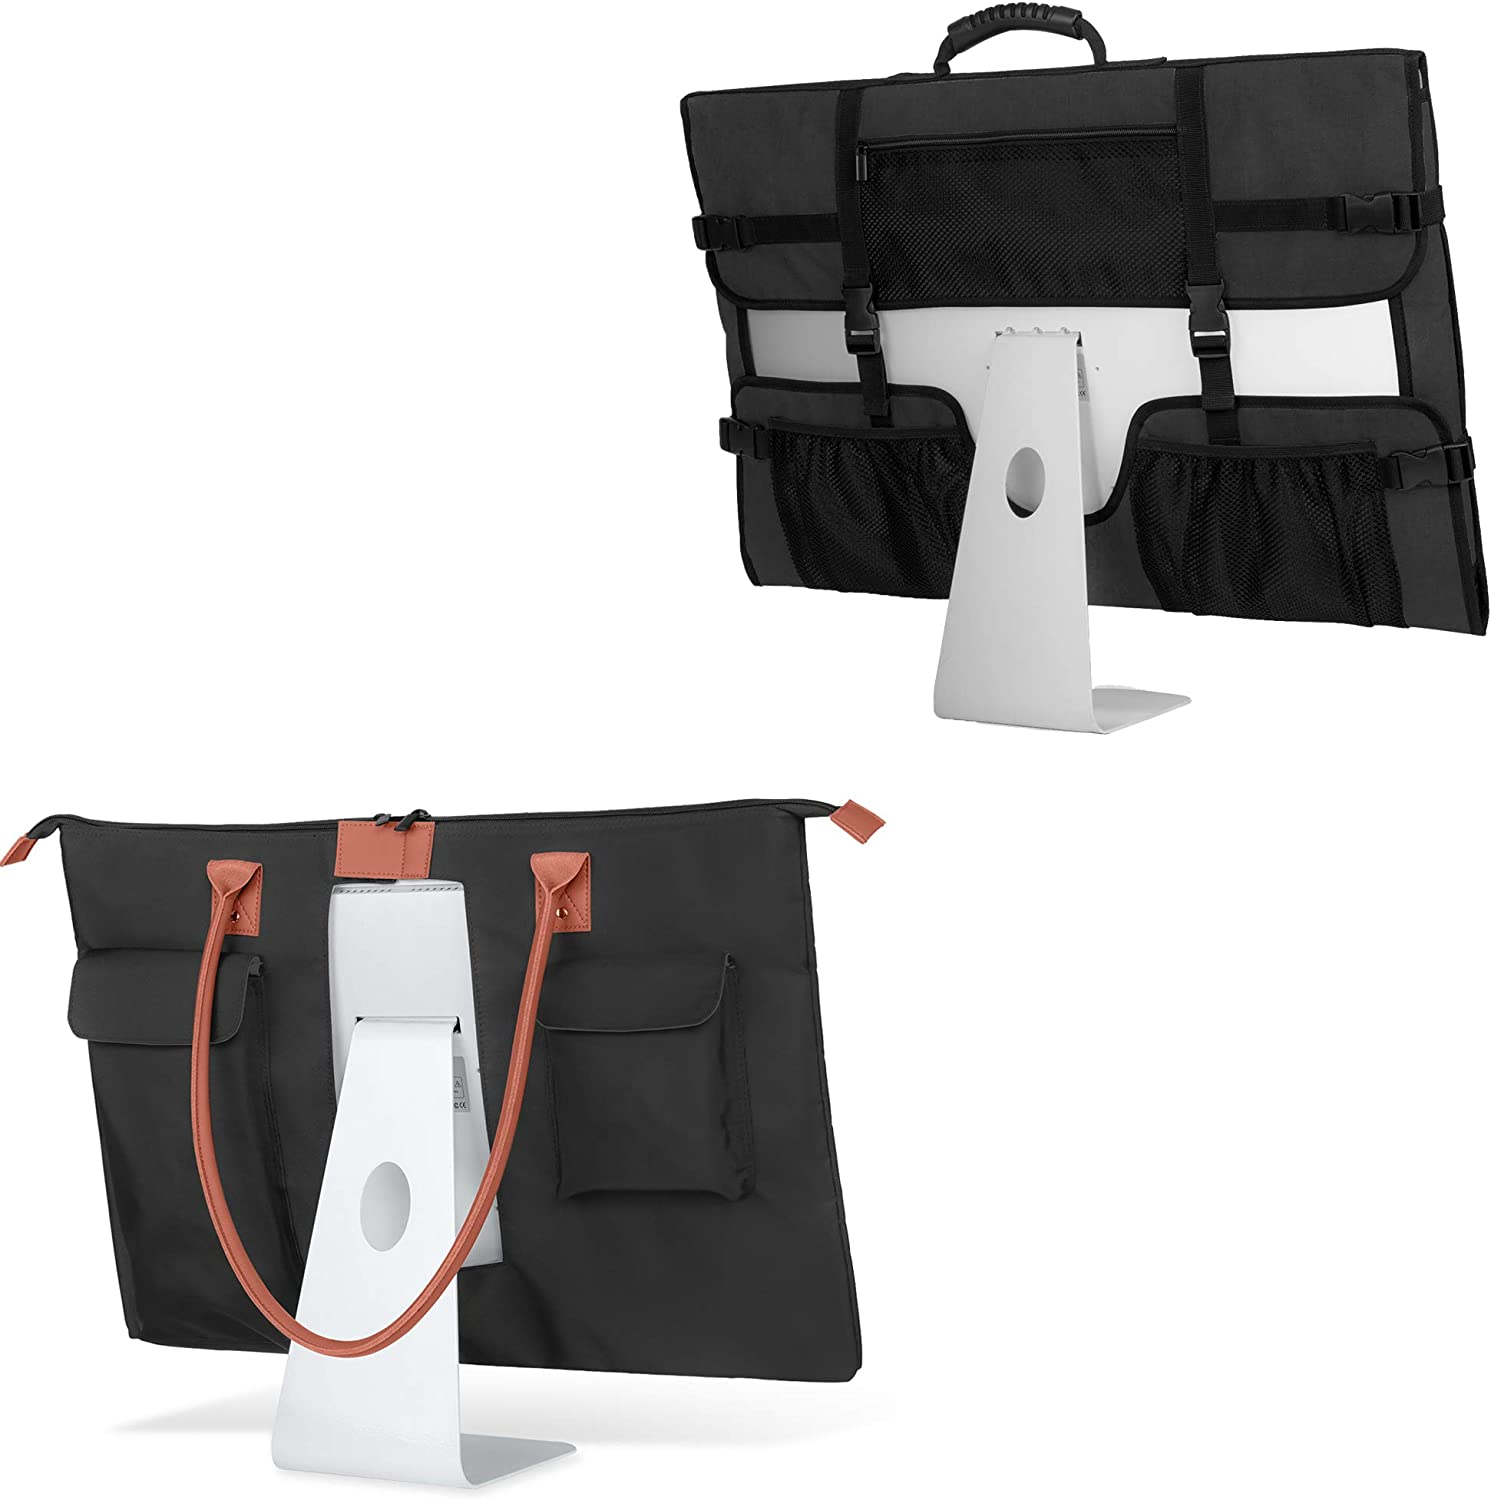 """CURMIO Travel Carrying Bag Compatible with Apple 27"""" iMac Desktop Computer, Tote Bag for 27"""" iMac Monitor and Accessories, Black"""